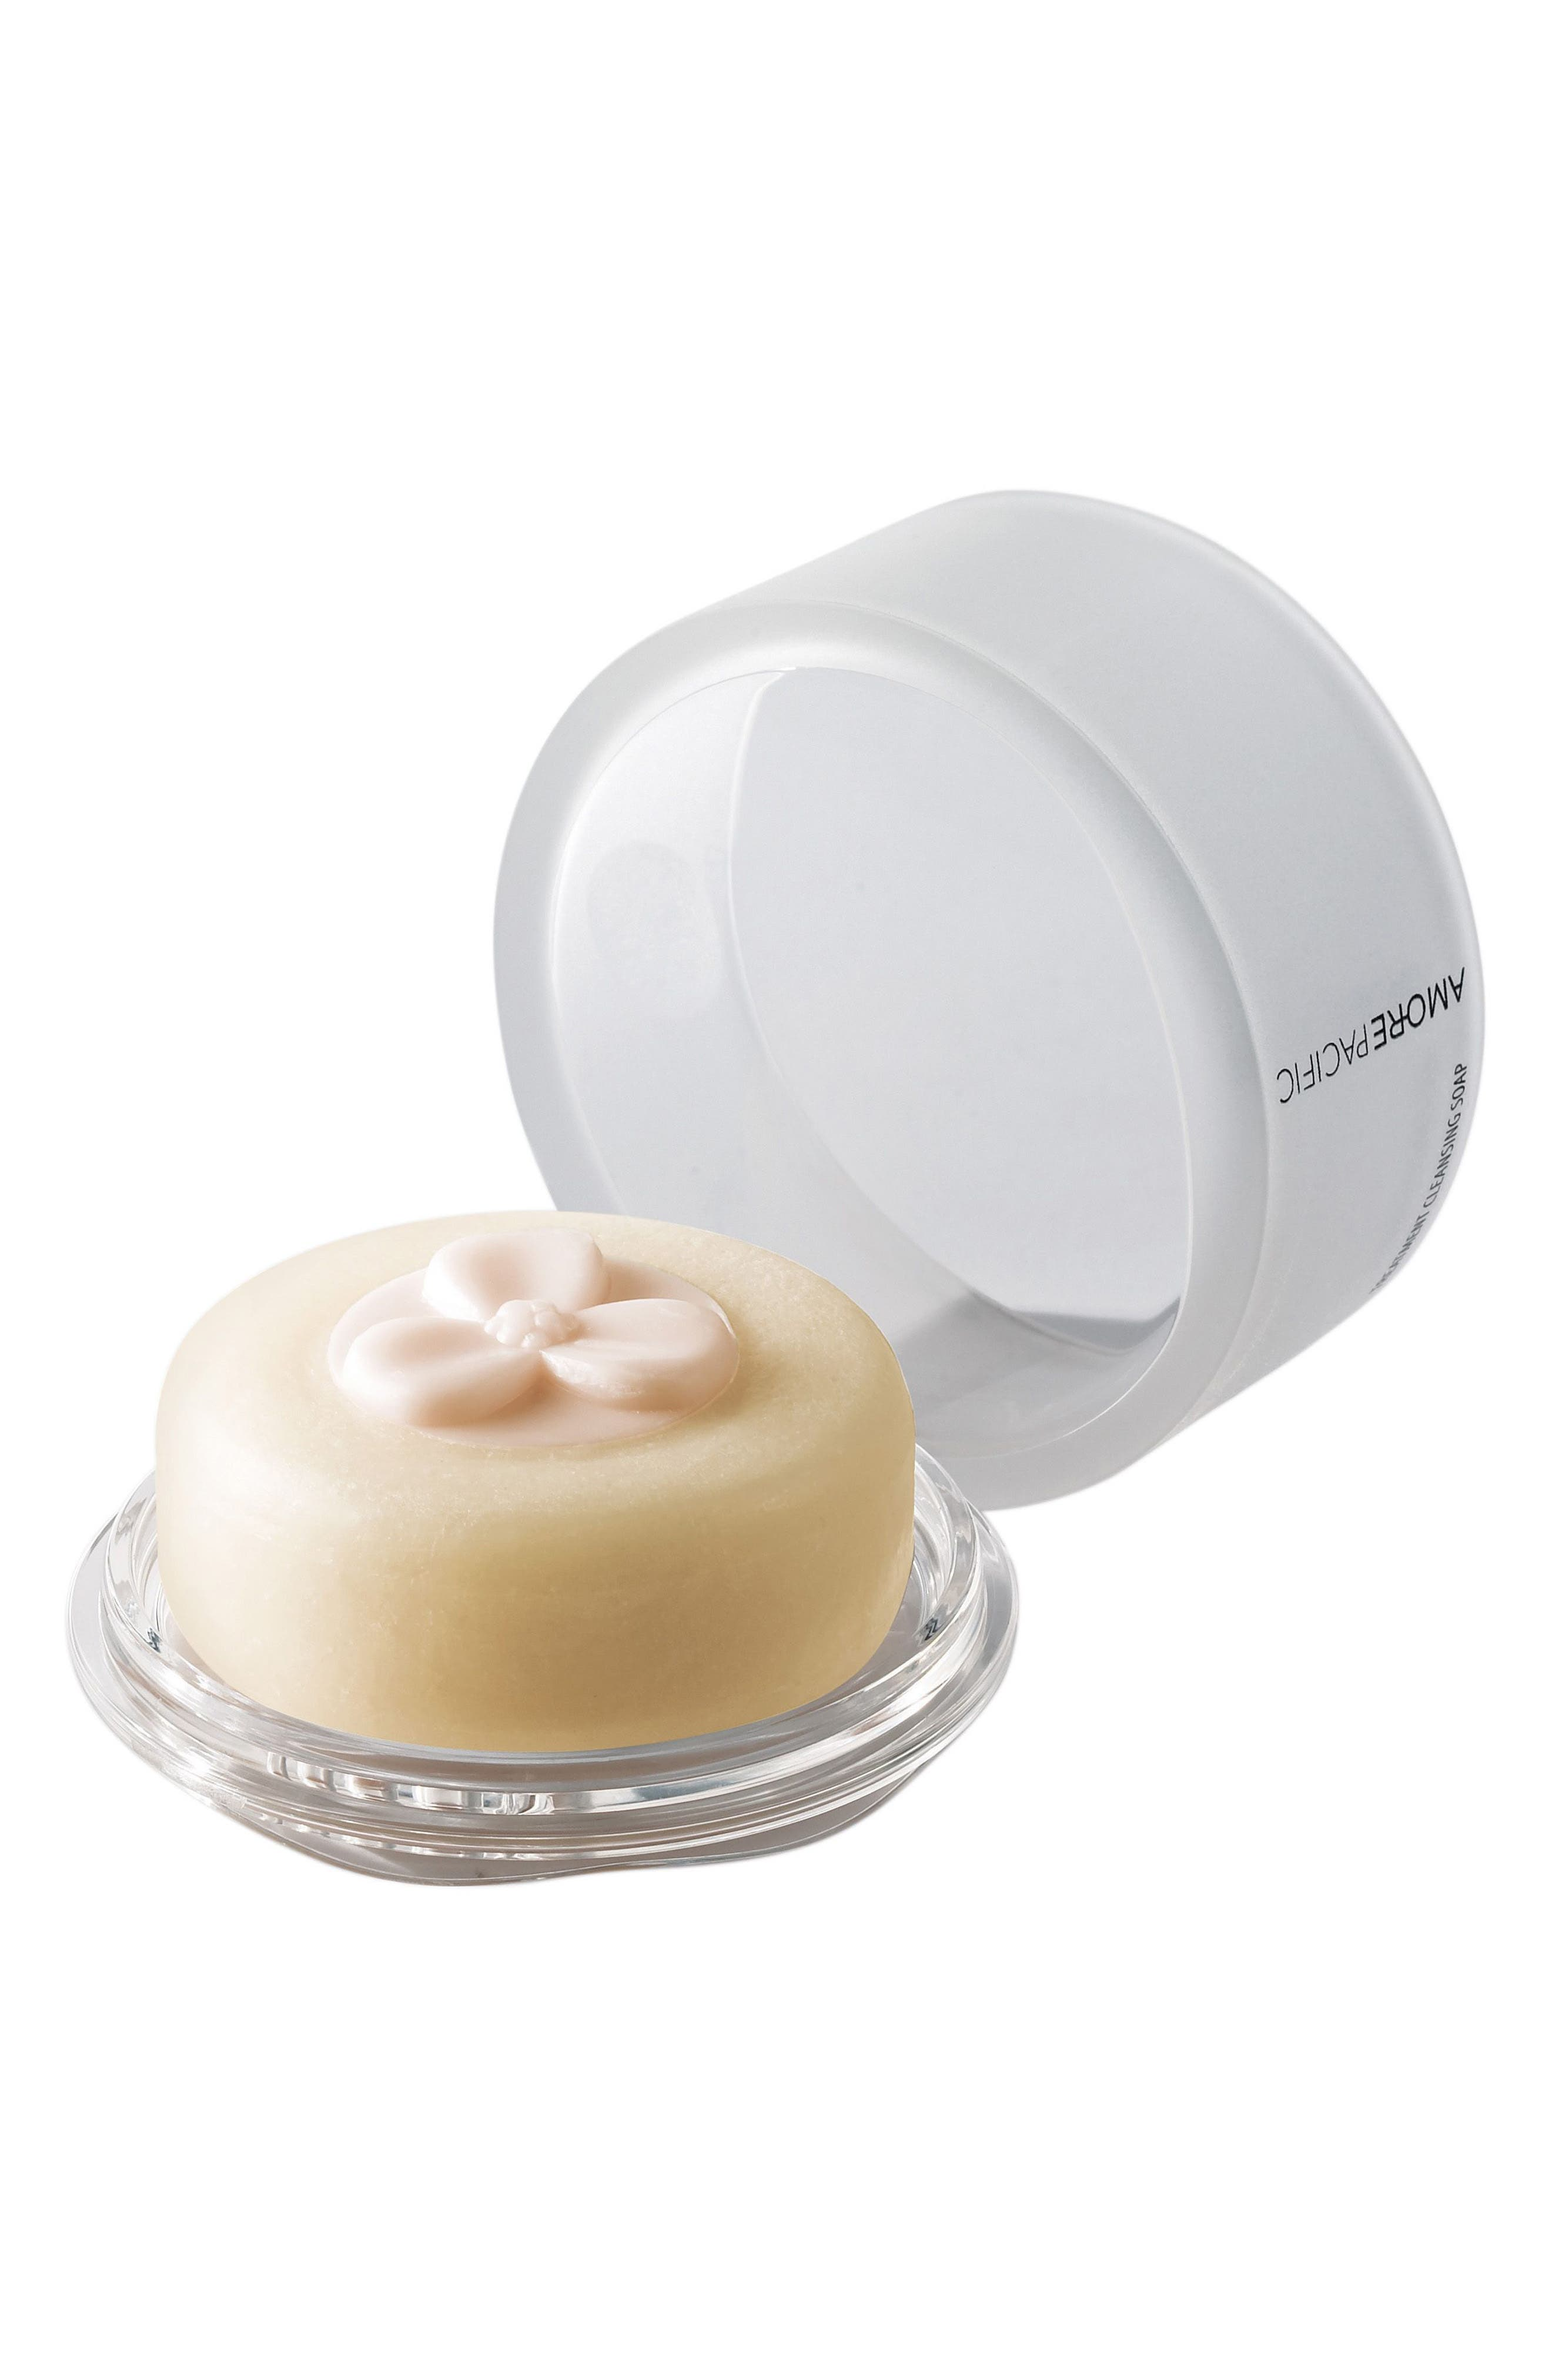 AMOREPACIFIC 'Treatment' Cleansing Soap